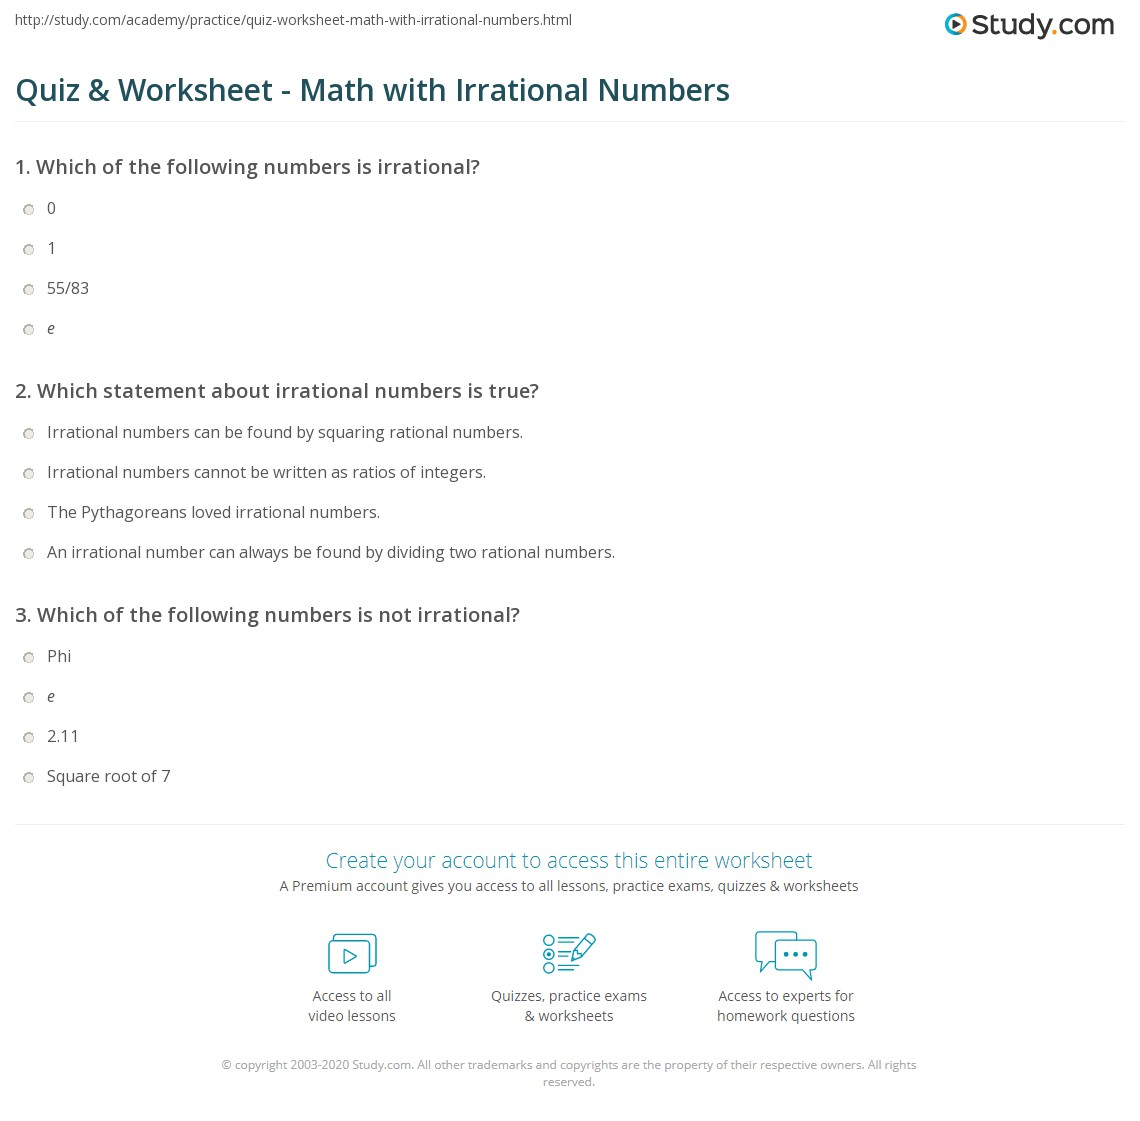 quiz & worksheet - math with irrational numbers | study